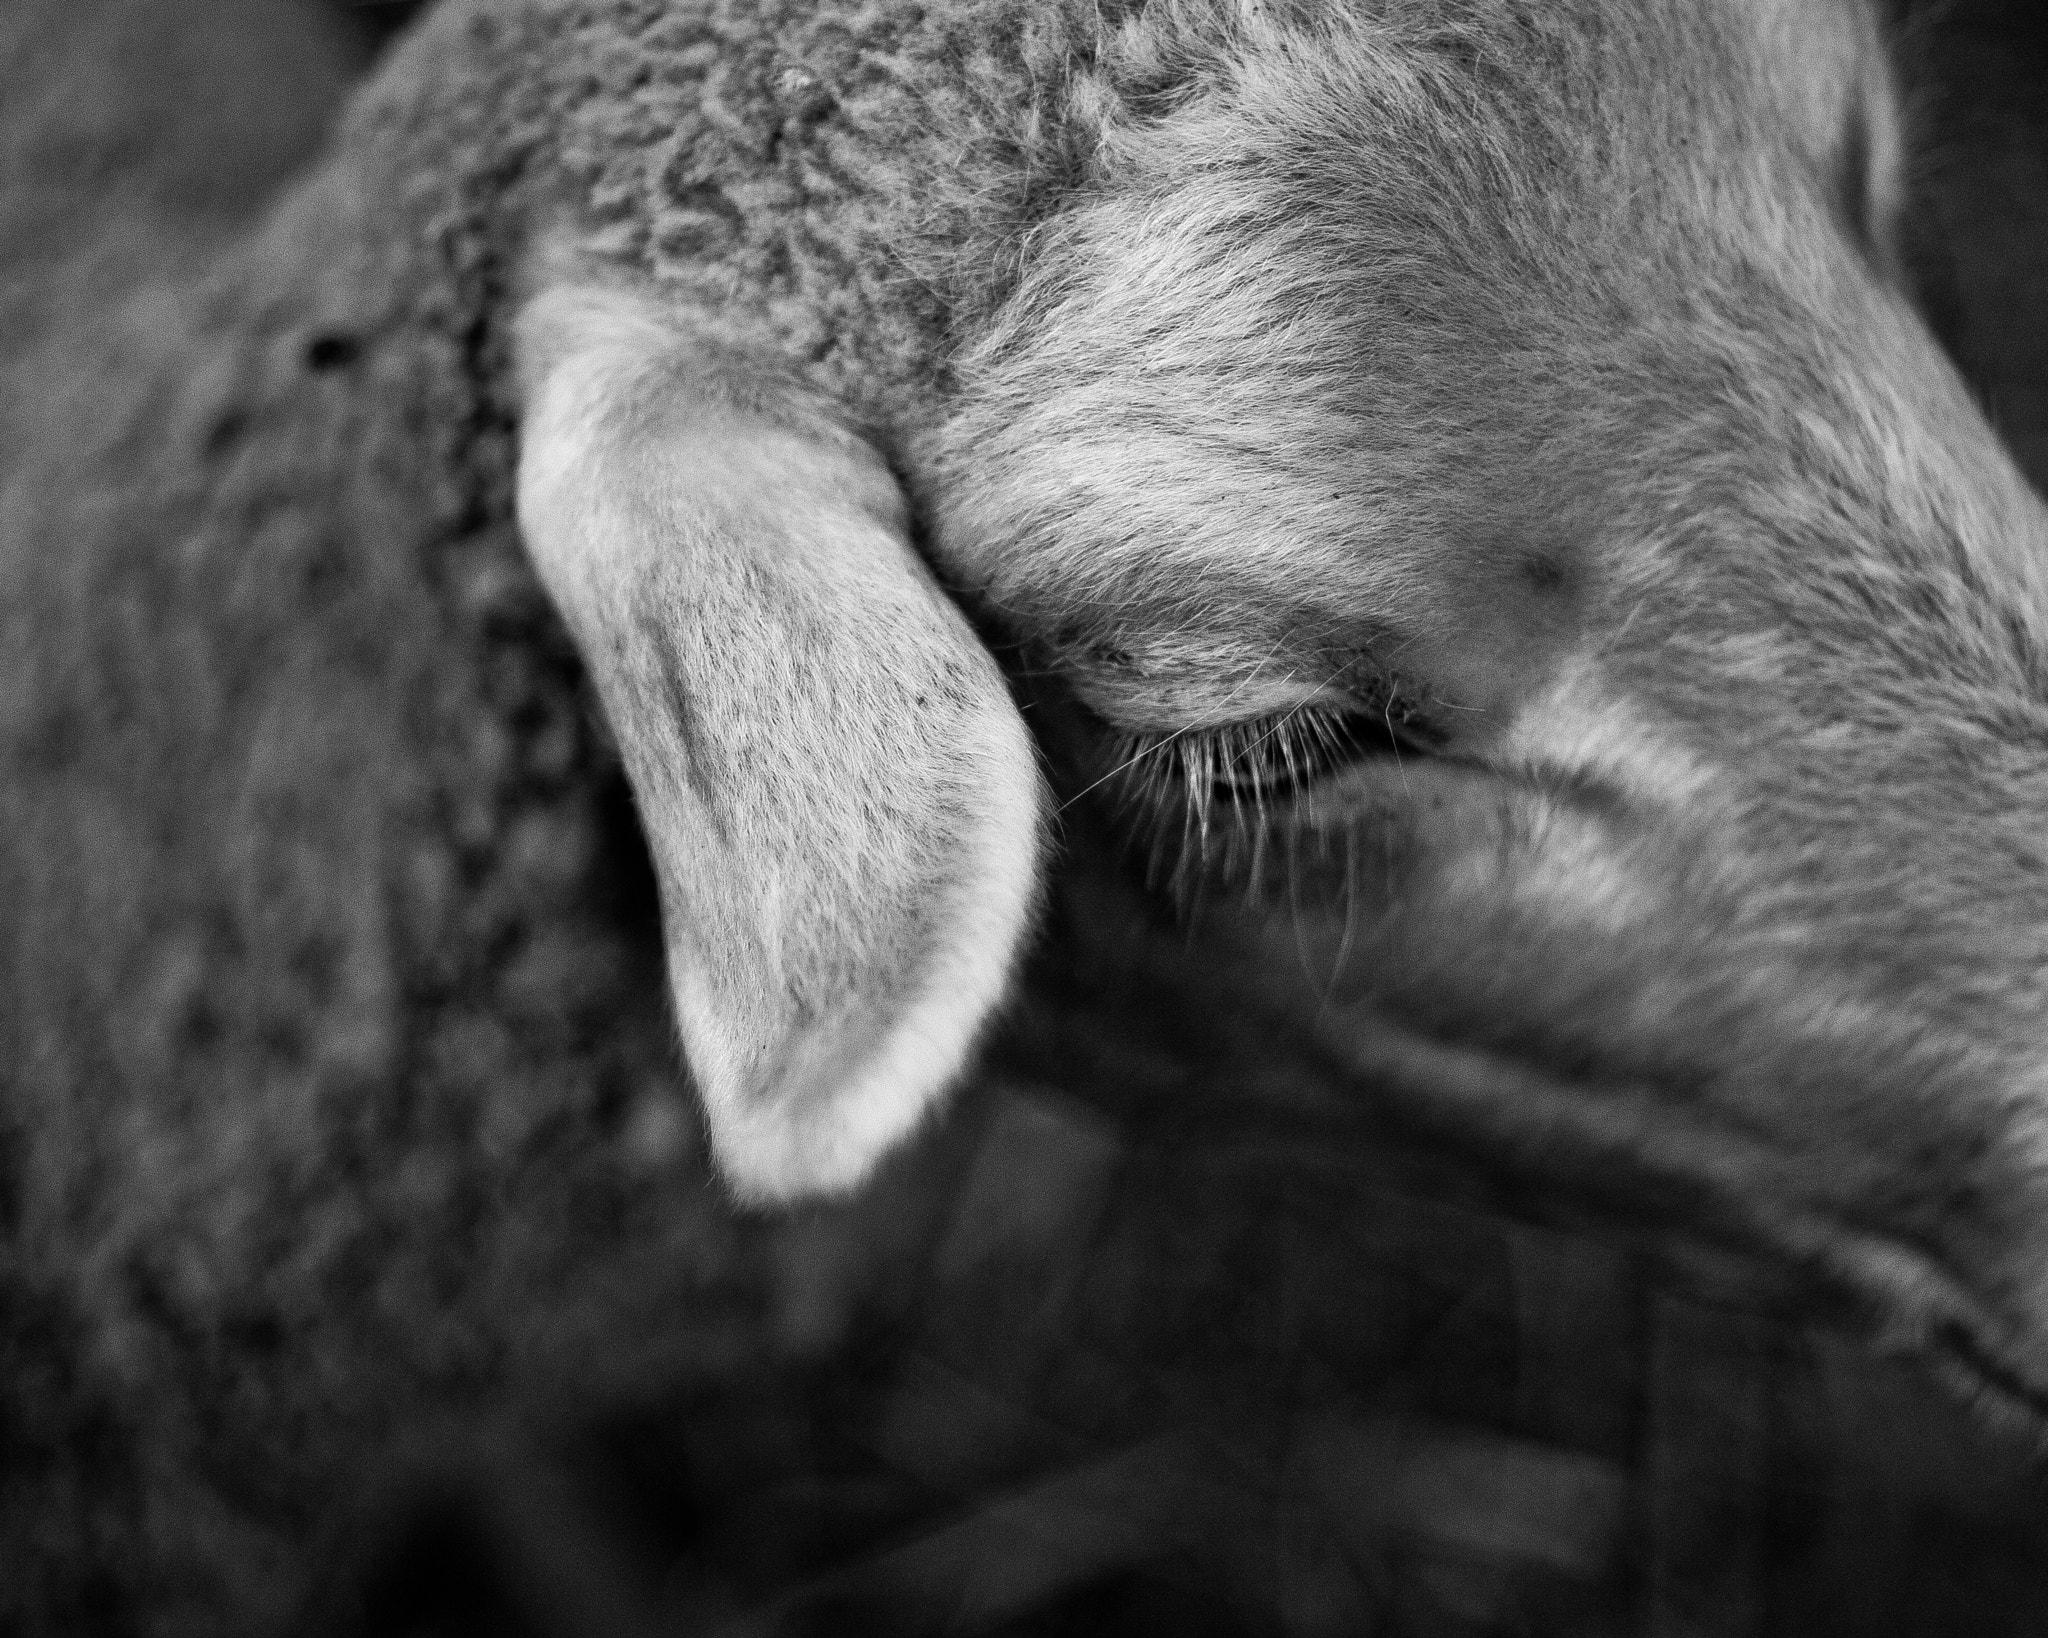 Photograph Sheep intimity by Gilles Domard on 500px